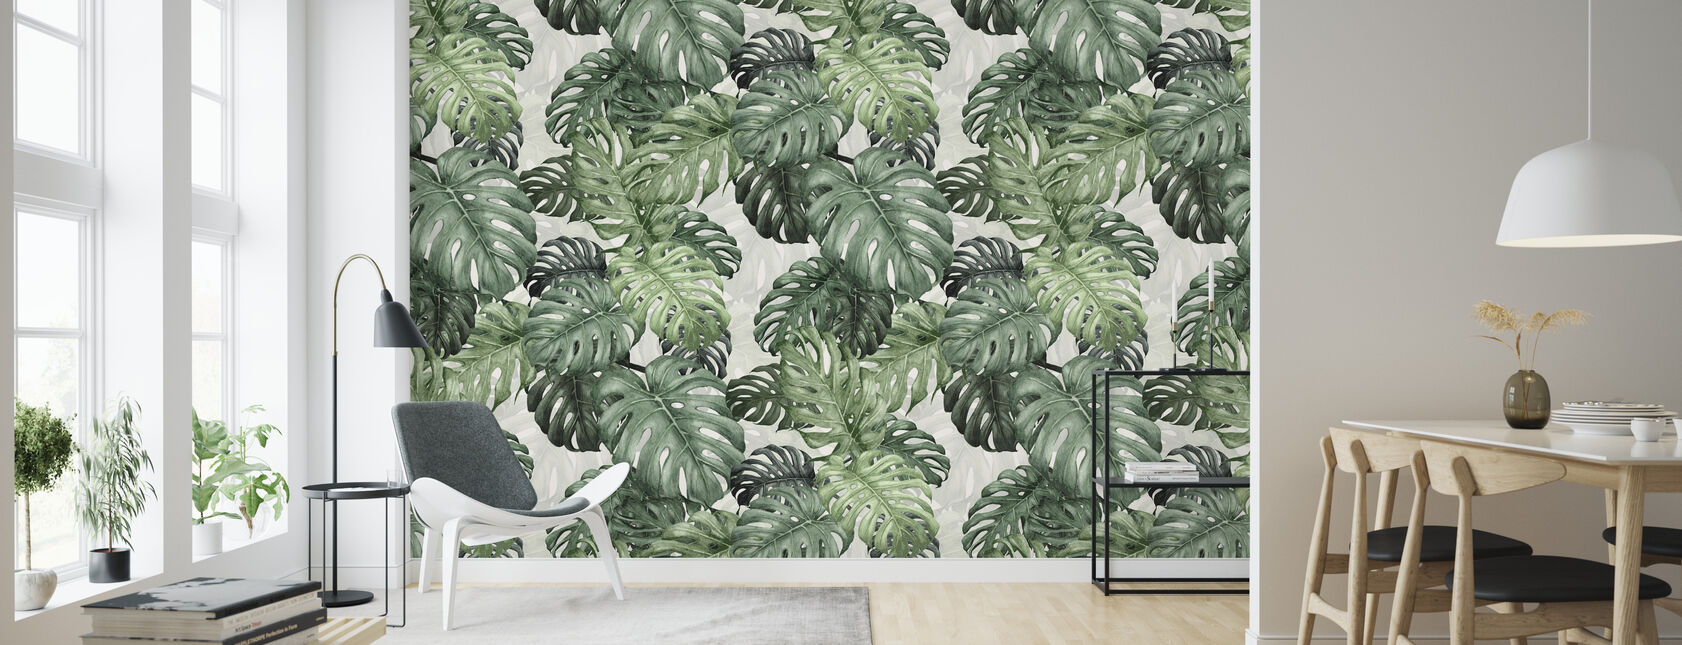 Botany Monstera - Wallpaper - Living Room